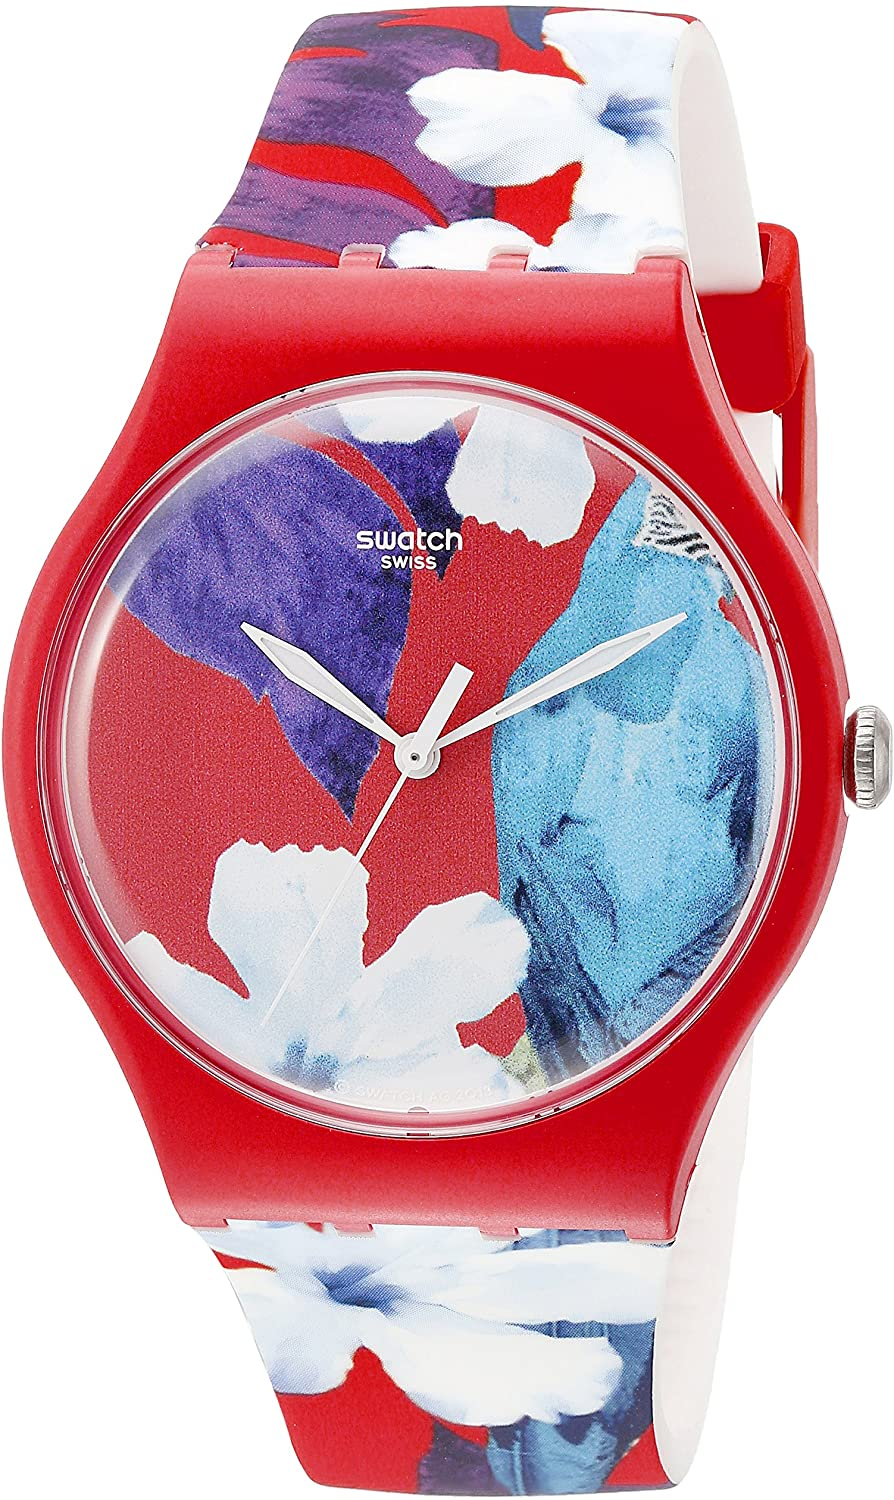 Swatch MISTER PARROT